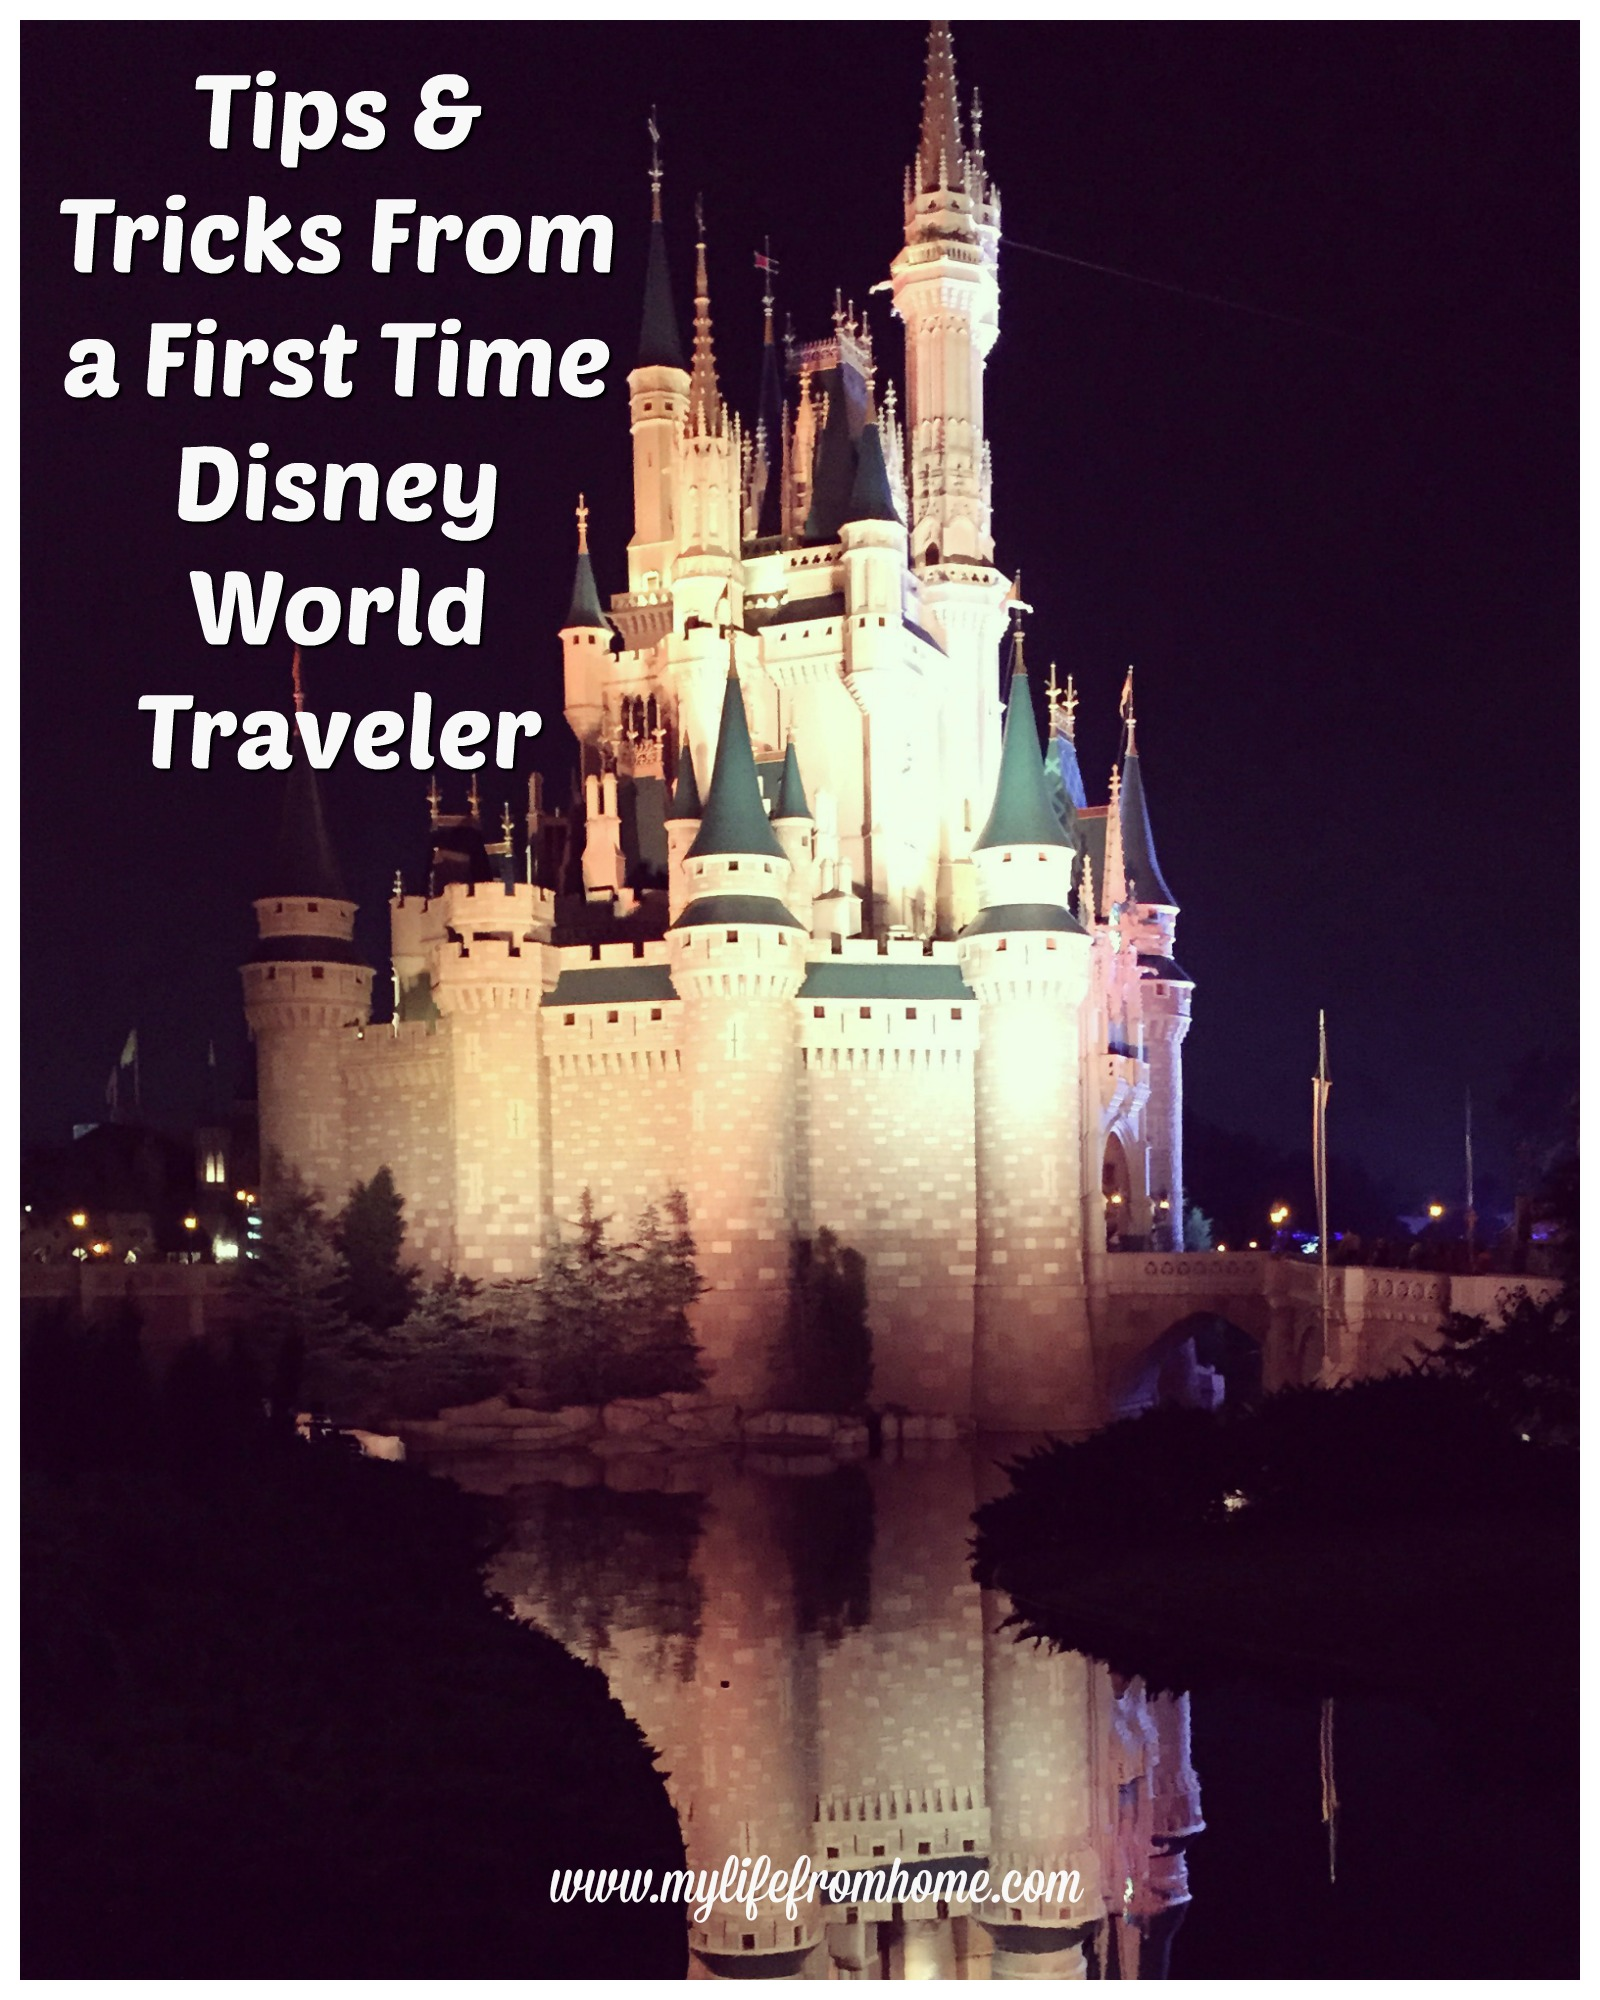 Tips & Tricks From a First Time Disney World Traveler by www.mylifefromhome.com